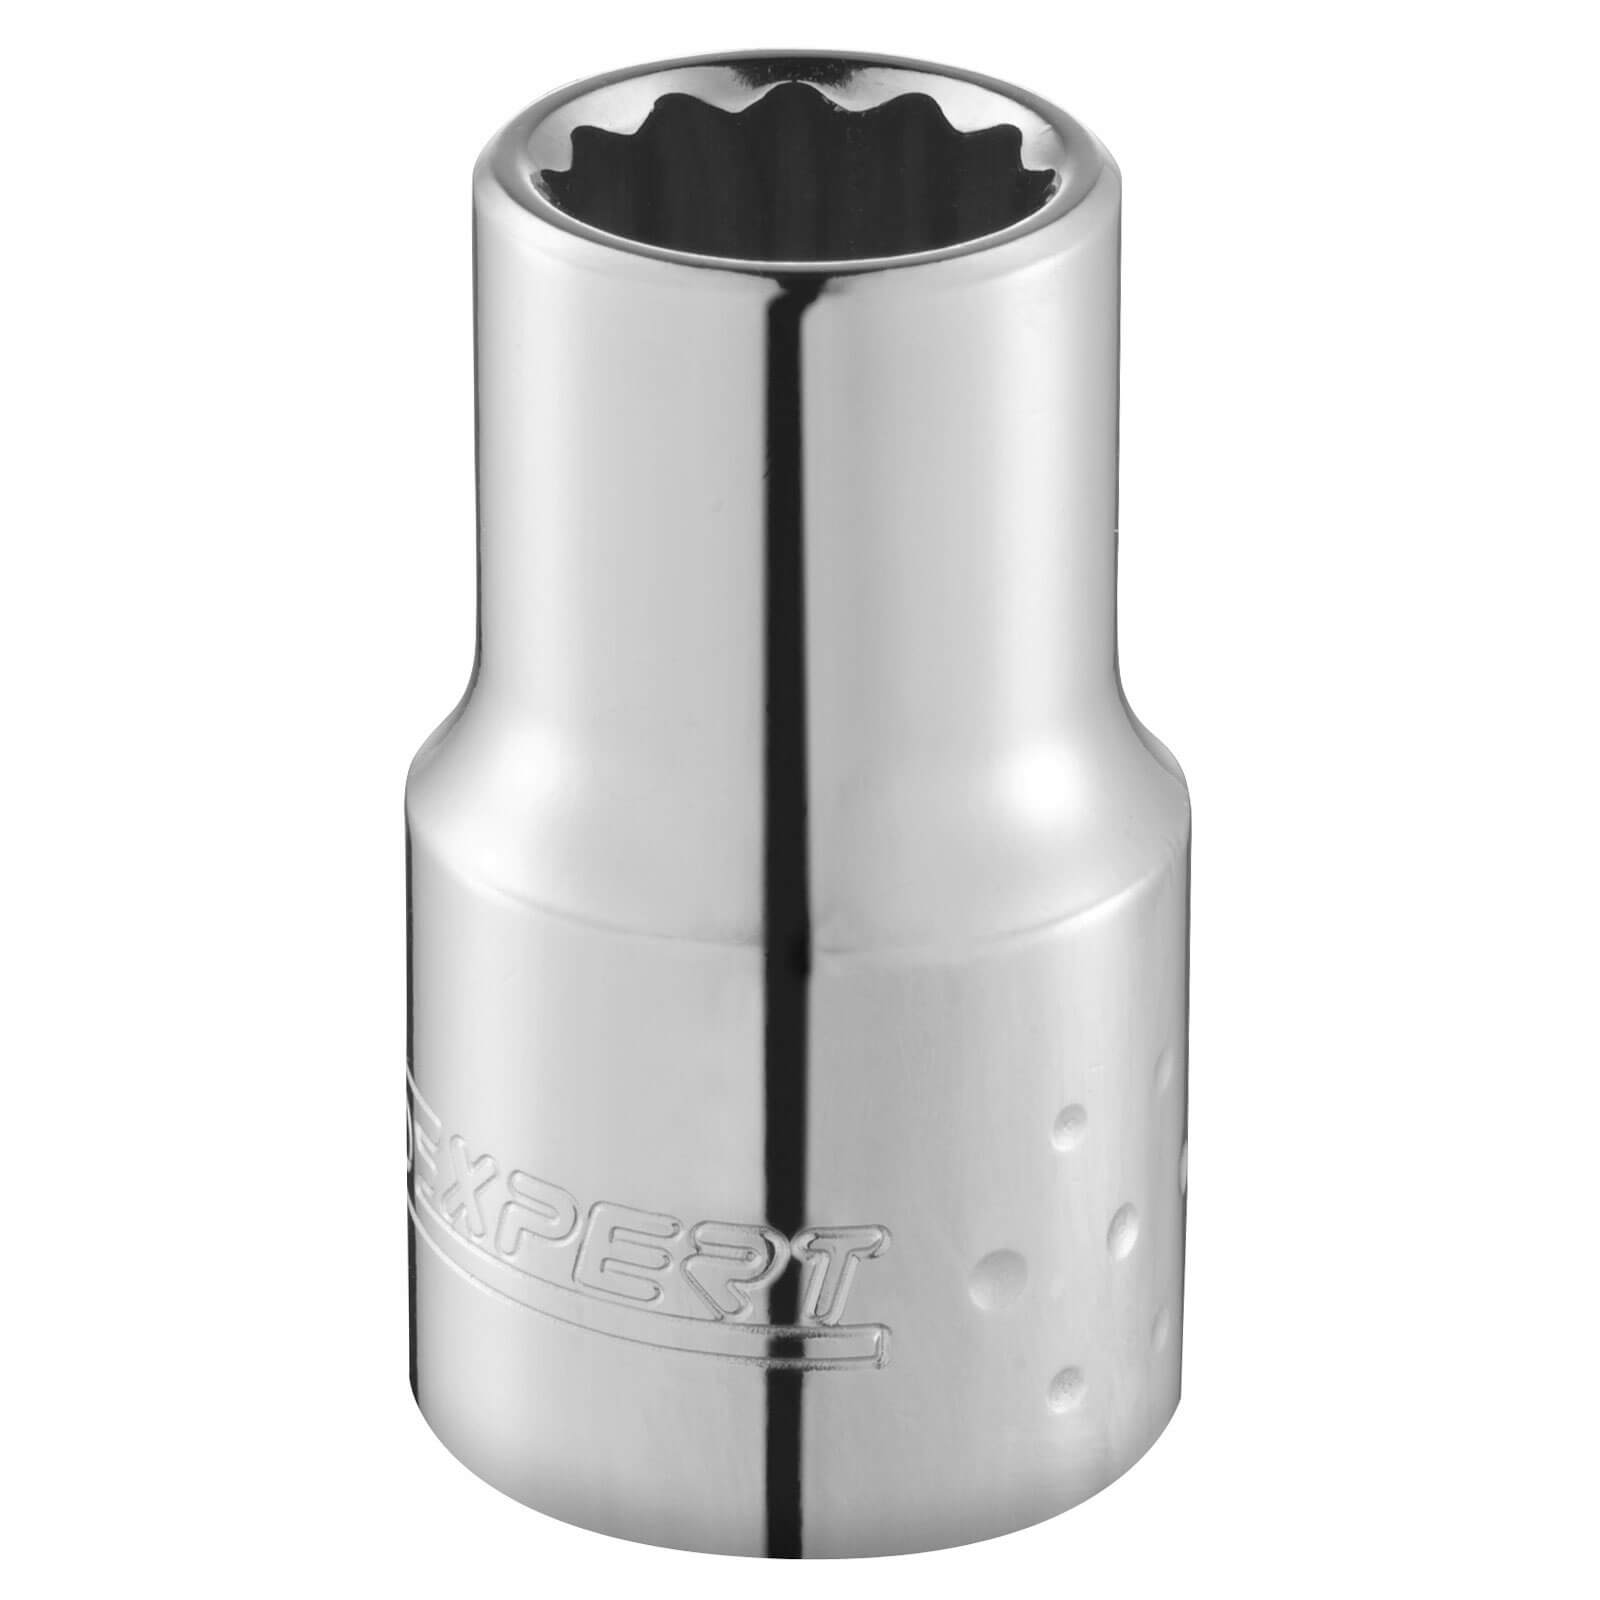 Expert By Facom 1 4 Drive Bi Hexagon Socket Metric 1 4 12mm